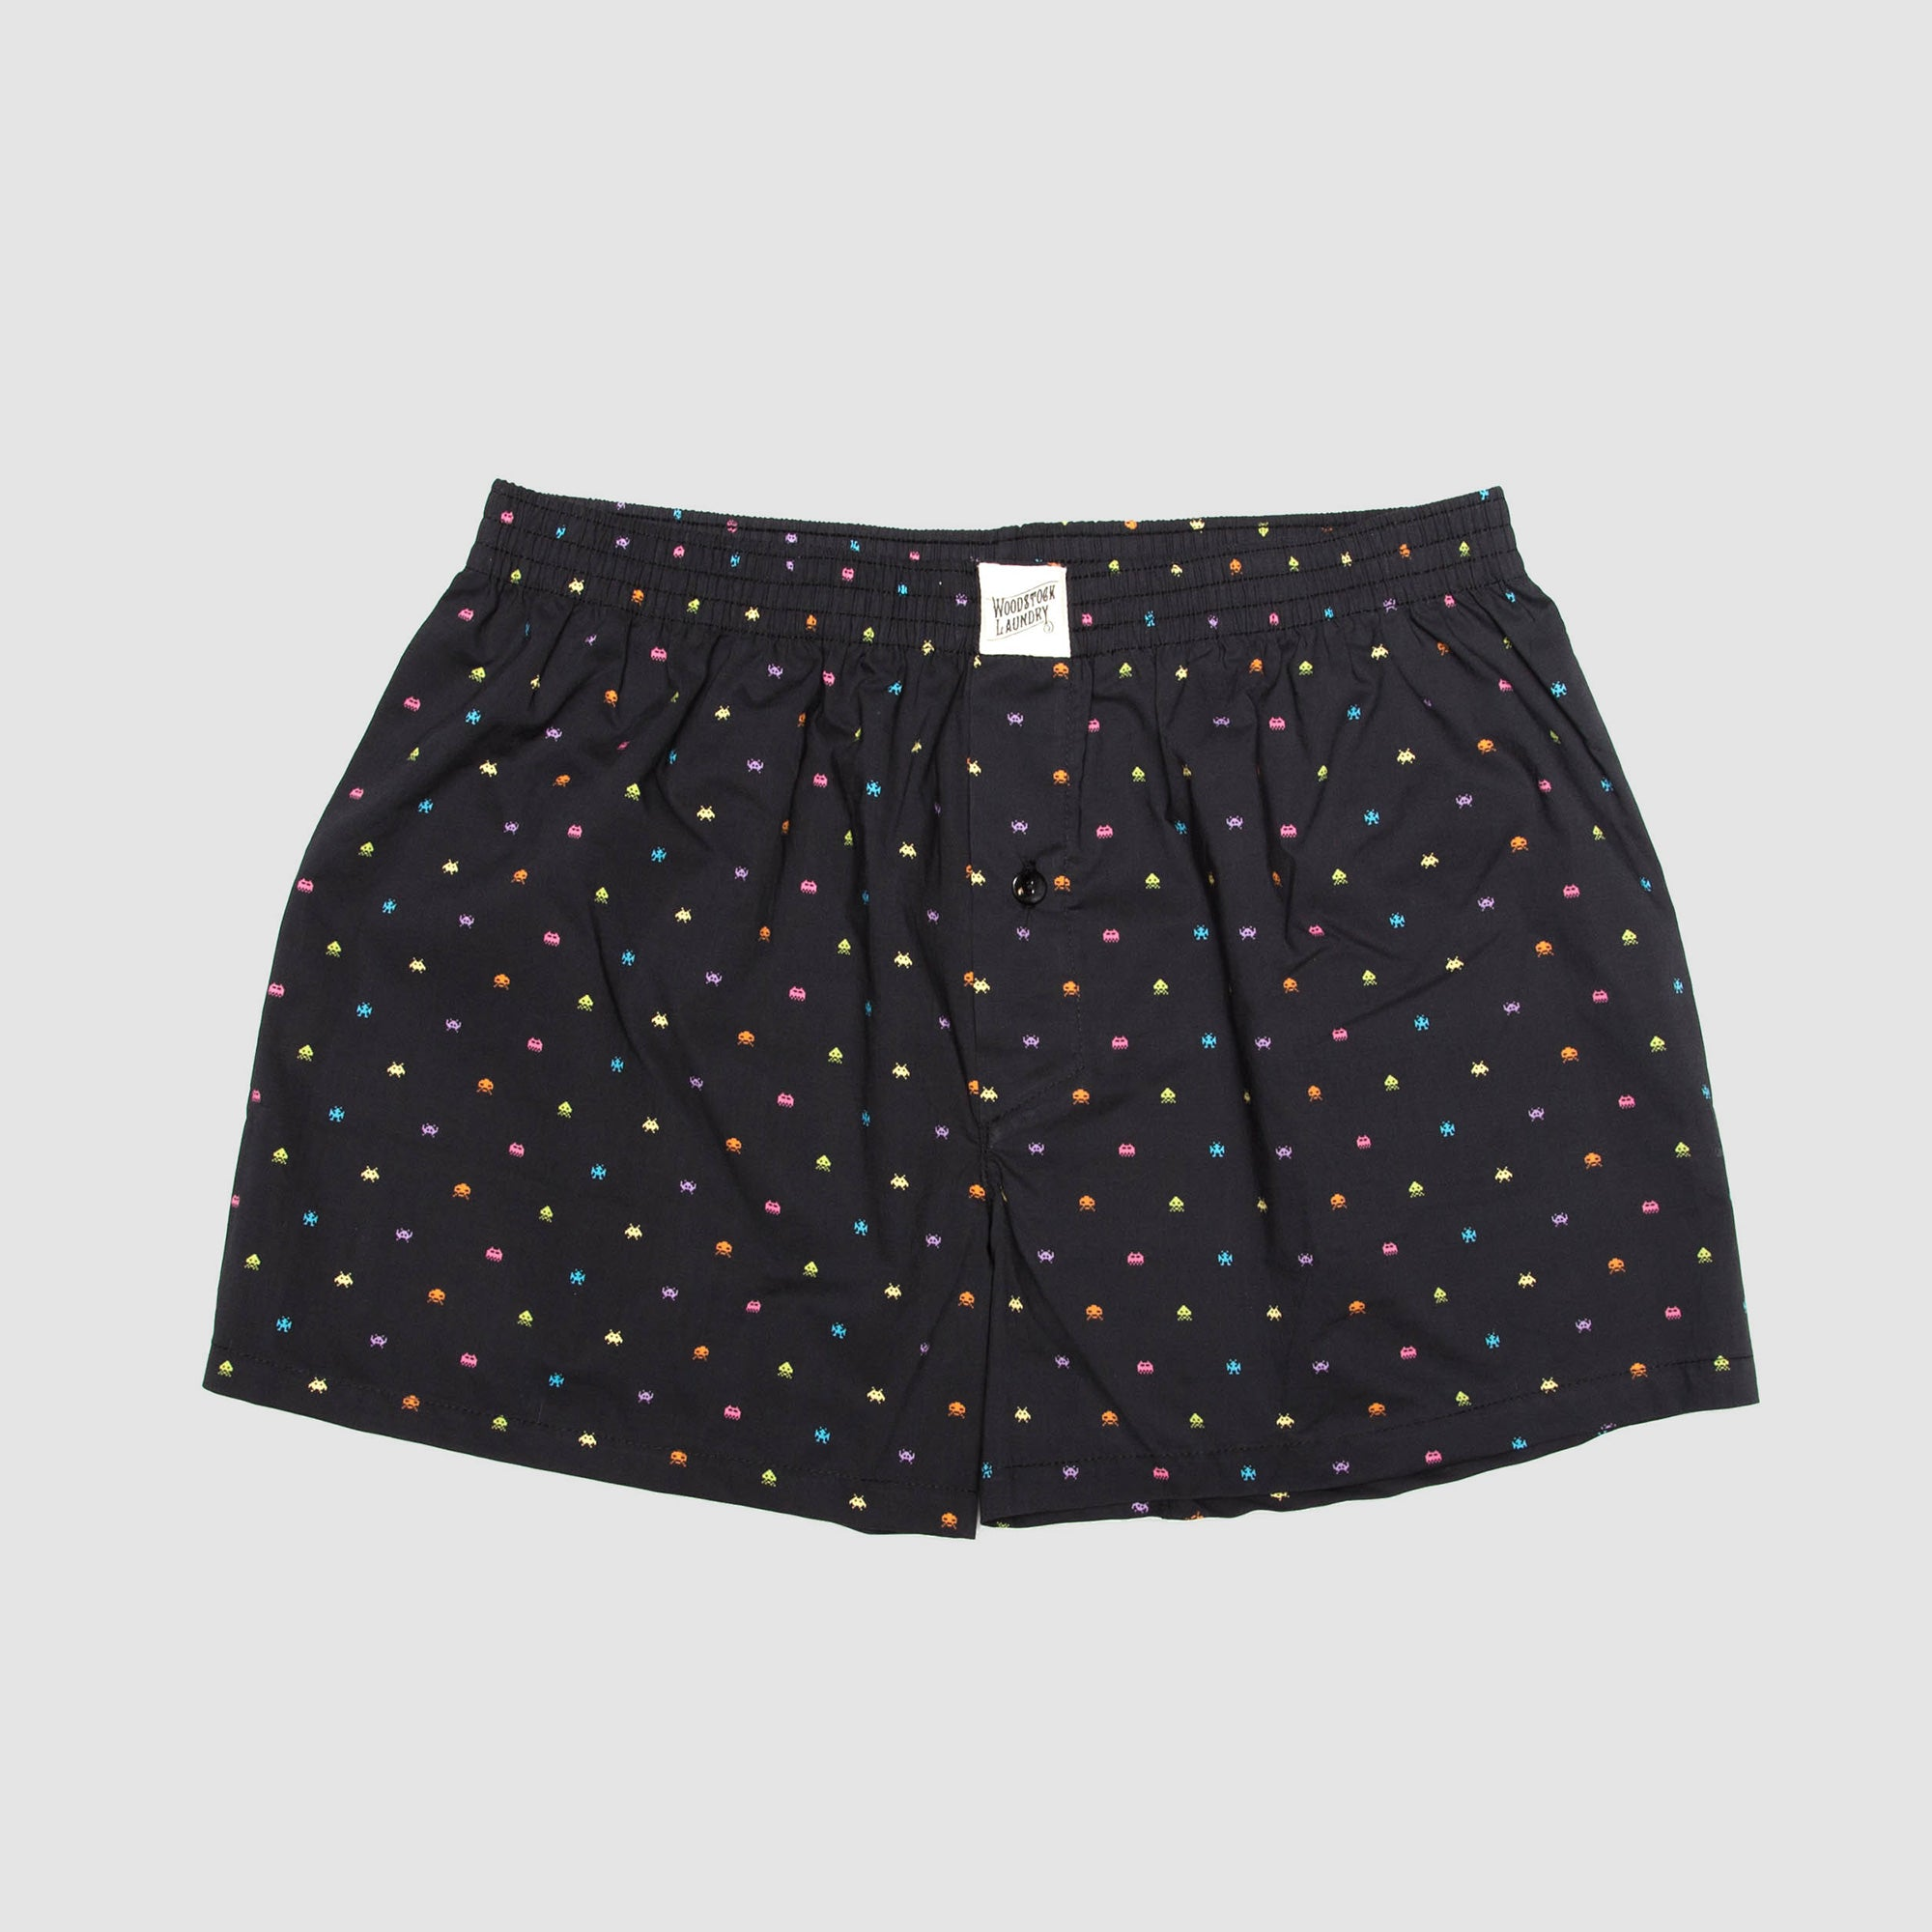 Mens Boxer Shorts Invaders Black - Woodstock Laundry